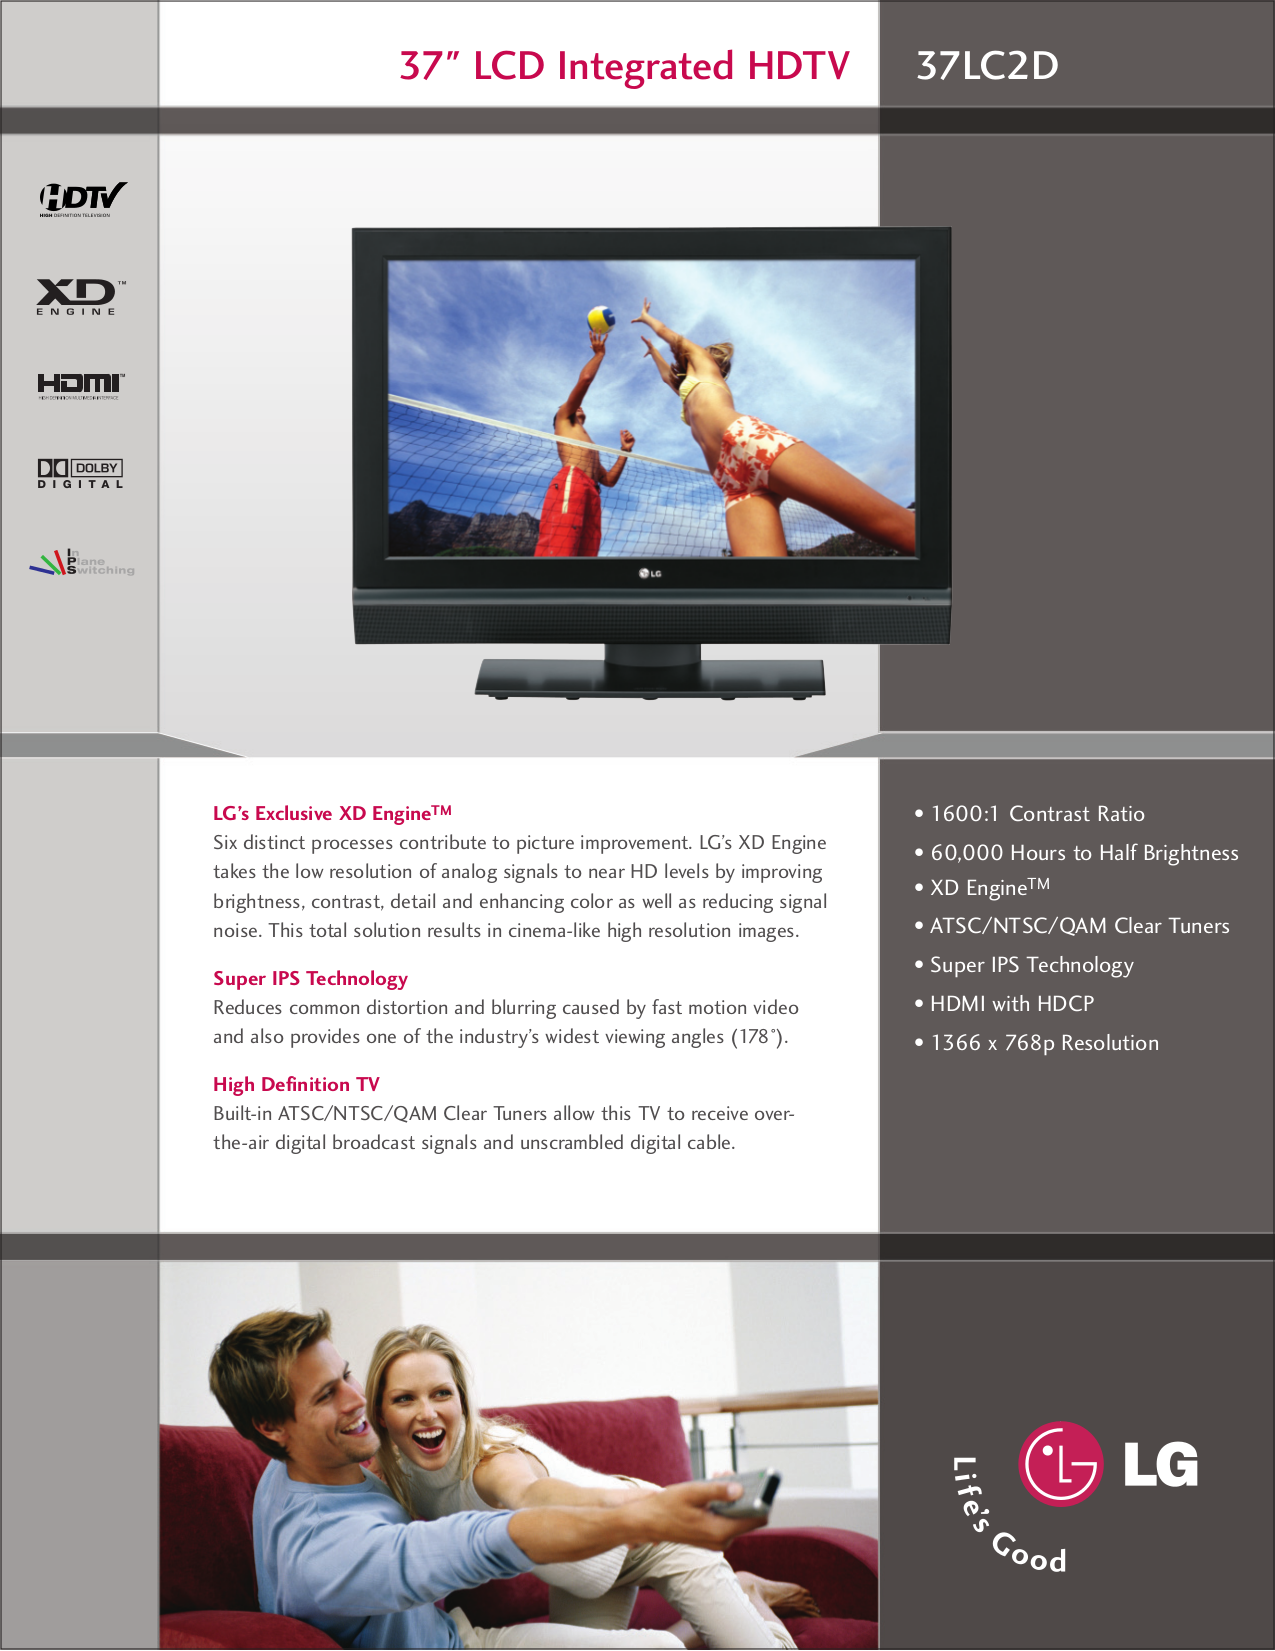 lg tv 37lc2d manual browse manual guides u2022 rh trufflefries co lg lcd service manual lg lcd tv training manual